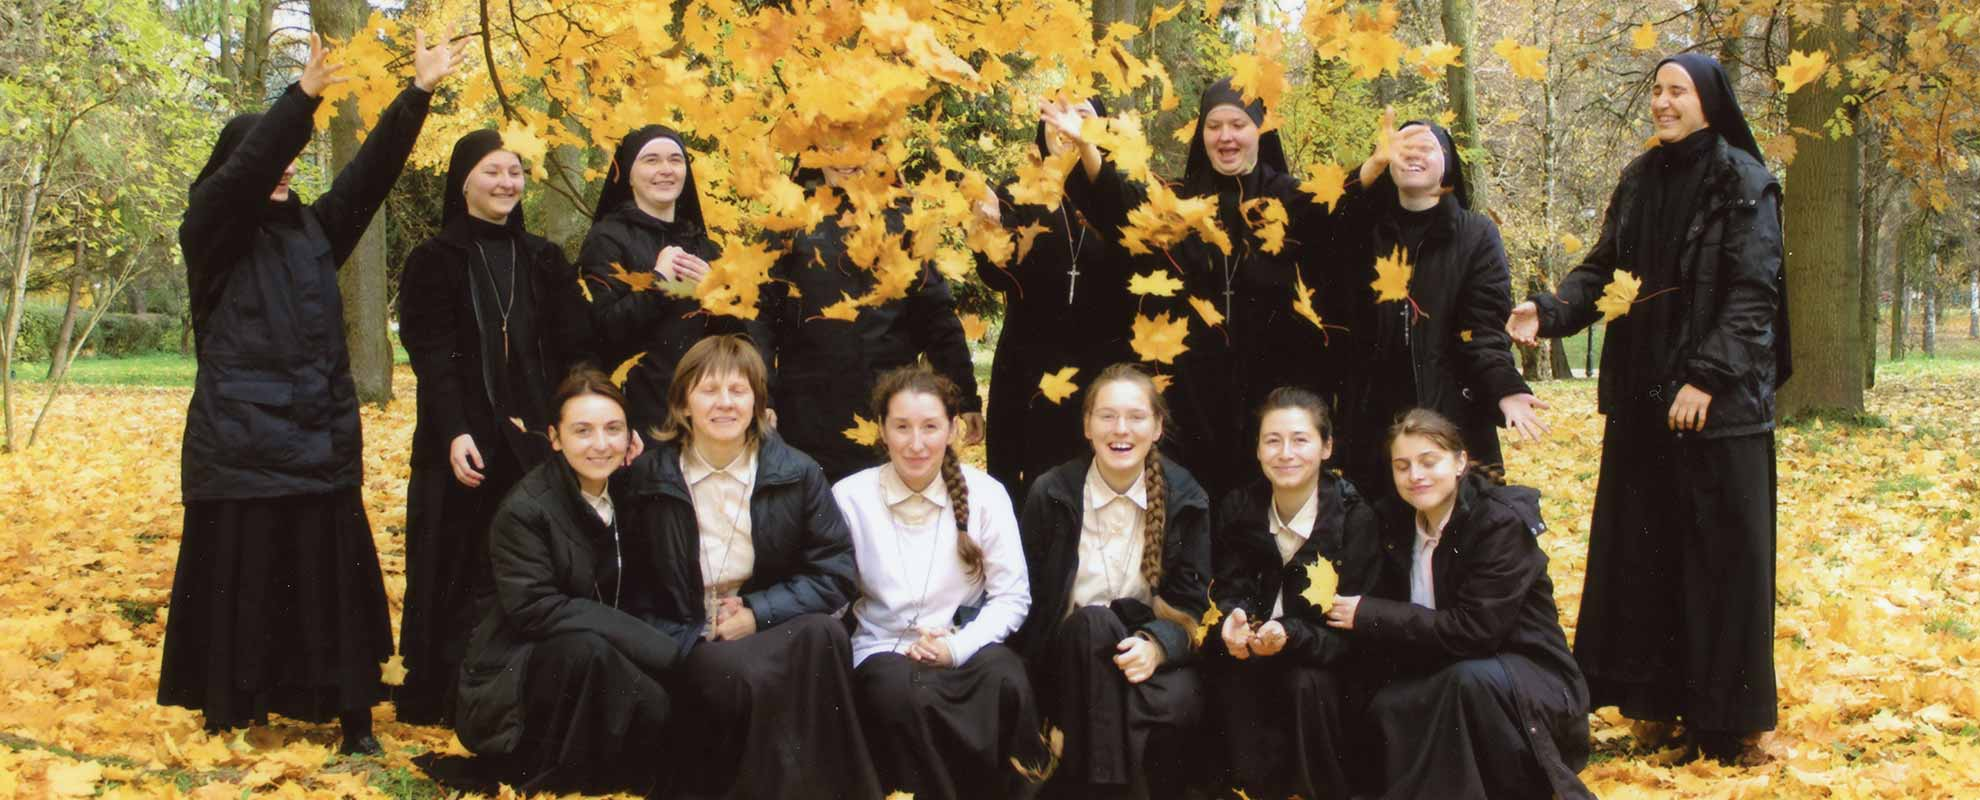 Ukraine:  Help for the formation of 16 young novices of the congregation Handmaids of the Lord and the Holy Virgin of Matará in Ivano-Frankivsk